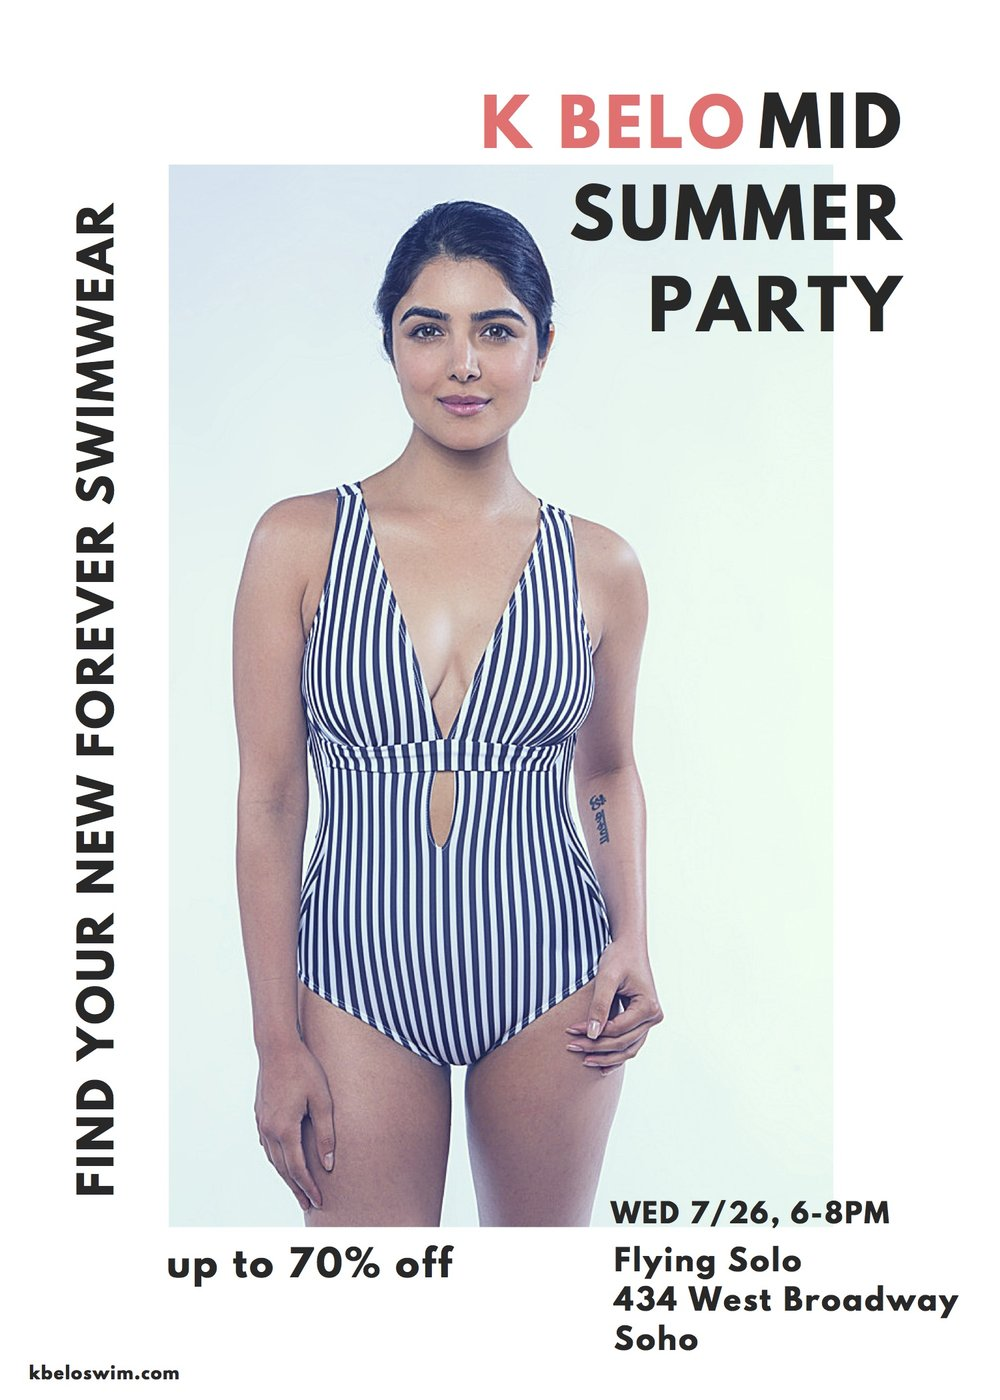 Join us for our K Belo mid summer party to celebrate our new collection, our collaboration with Flying Solo, and that summer is fully here!  Wednesday 7/26, 6-8pm Flying Solo 434 West Broadway NY, NY K Belo swimwear is designed to last many summers, because we know how sad it is to say goodbye to a cherished, well loved swimsuit. If you know that feeling and are looking for swimwear you can love forever, come have a drink with us and shop our beautiful new collection and our classic styles.  The Summer 2017 collection is inspired by the wild beauty of the shoreline, where the ocean meets the sand, and that feeling of lightness it creates in us to stand in such vastness on the edge of a continent meeting the edge of the sea. All K Belo swimwear is made locally in New York of eco and sustainable recycled Italian fabric, SPF 50, so that we can do our part to lessen the environmental impact of the fashion industry. A percentage of all sales from the event will be donated to the Surfrider foundation. www.kbeloswim.com www.flyingsolo.nyc www.surfrider.org